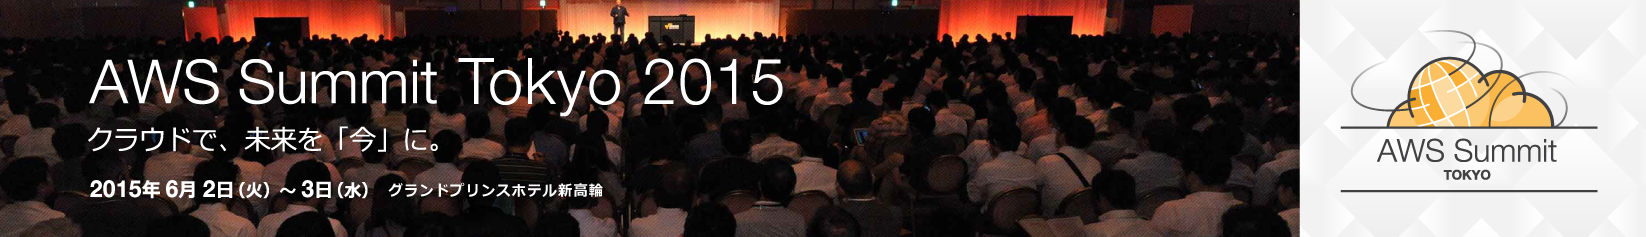 img_main_compile_summittokyo2015